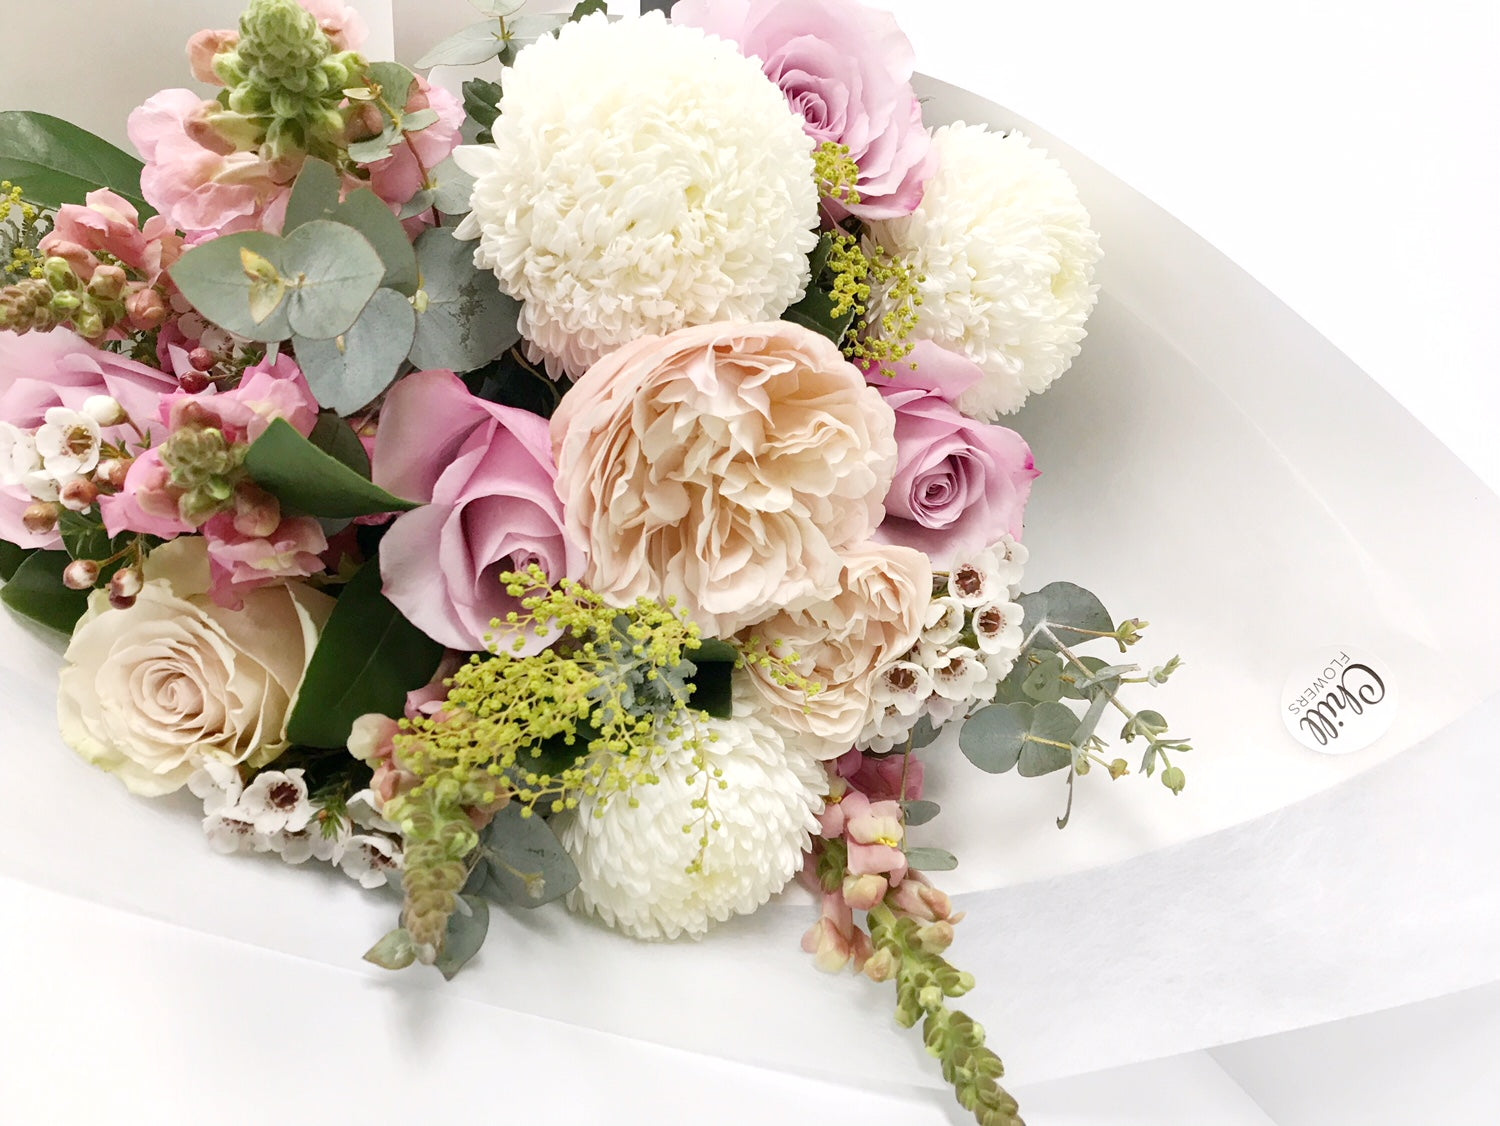 Beautiful Bouquet of David Austin Roses, Fluffy Chrysanthemums, Garden Roses, Blue Gum, Lisianthus, Snap Dragons, Wattle and Native Foliage.